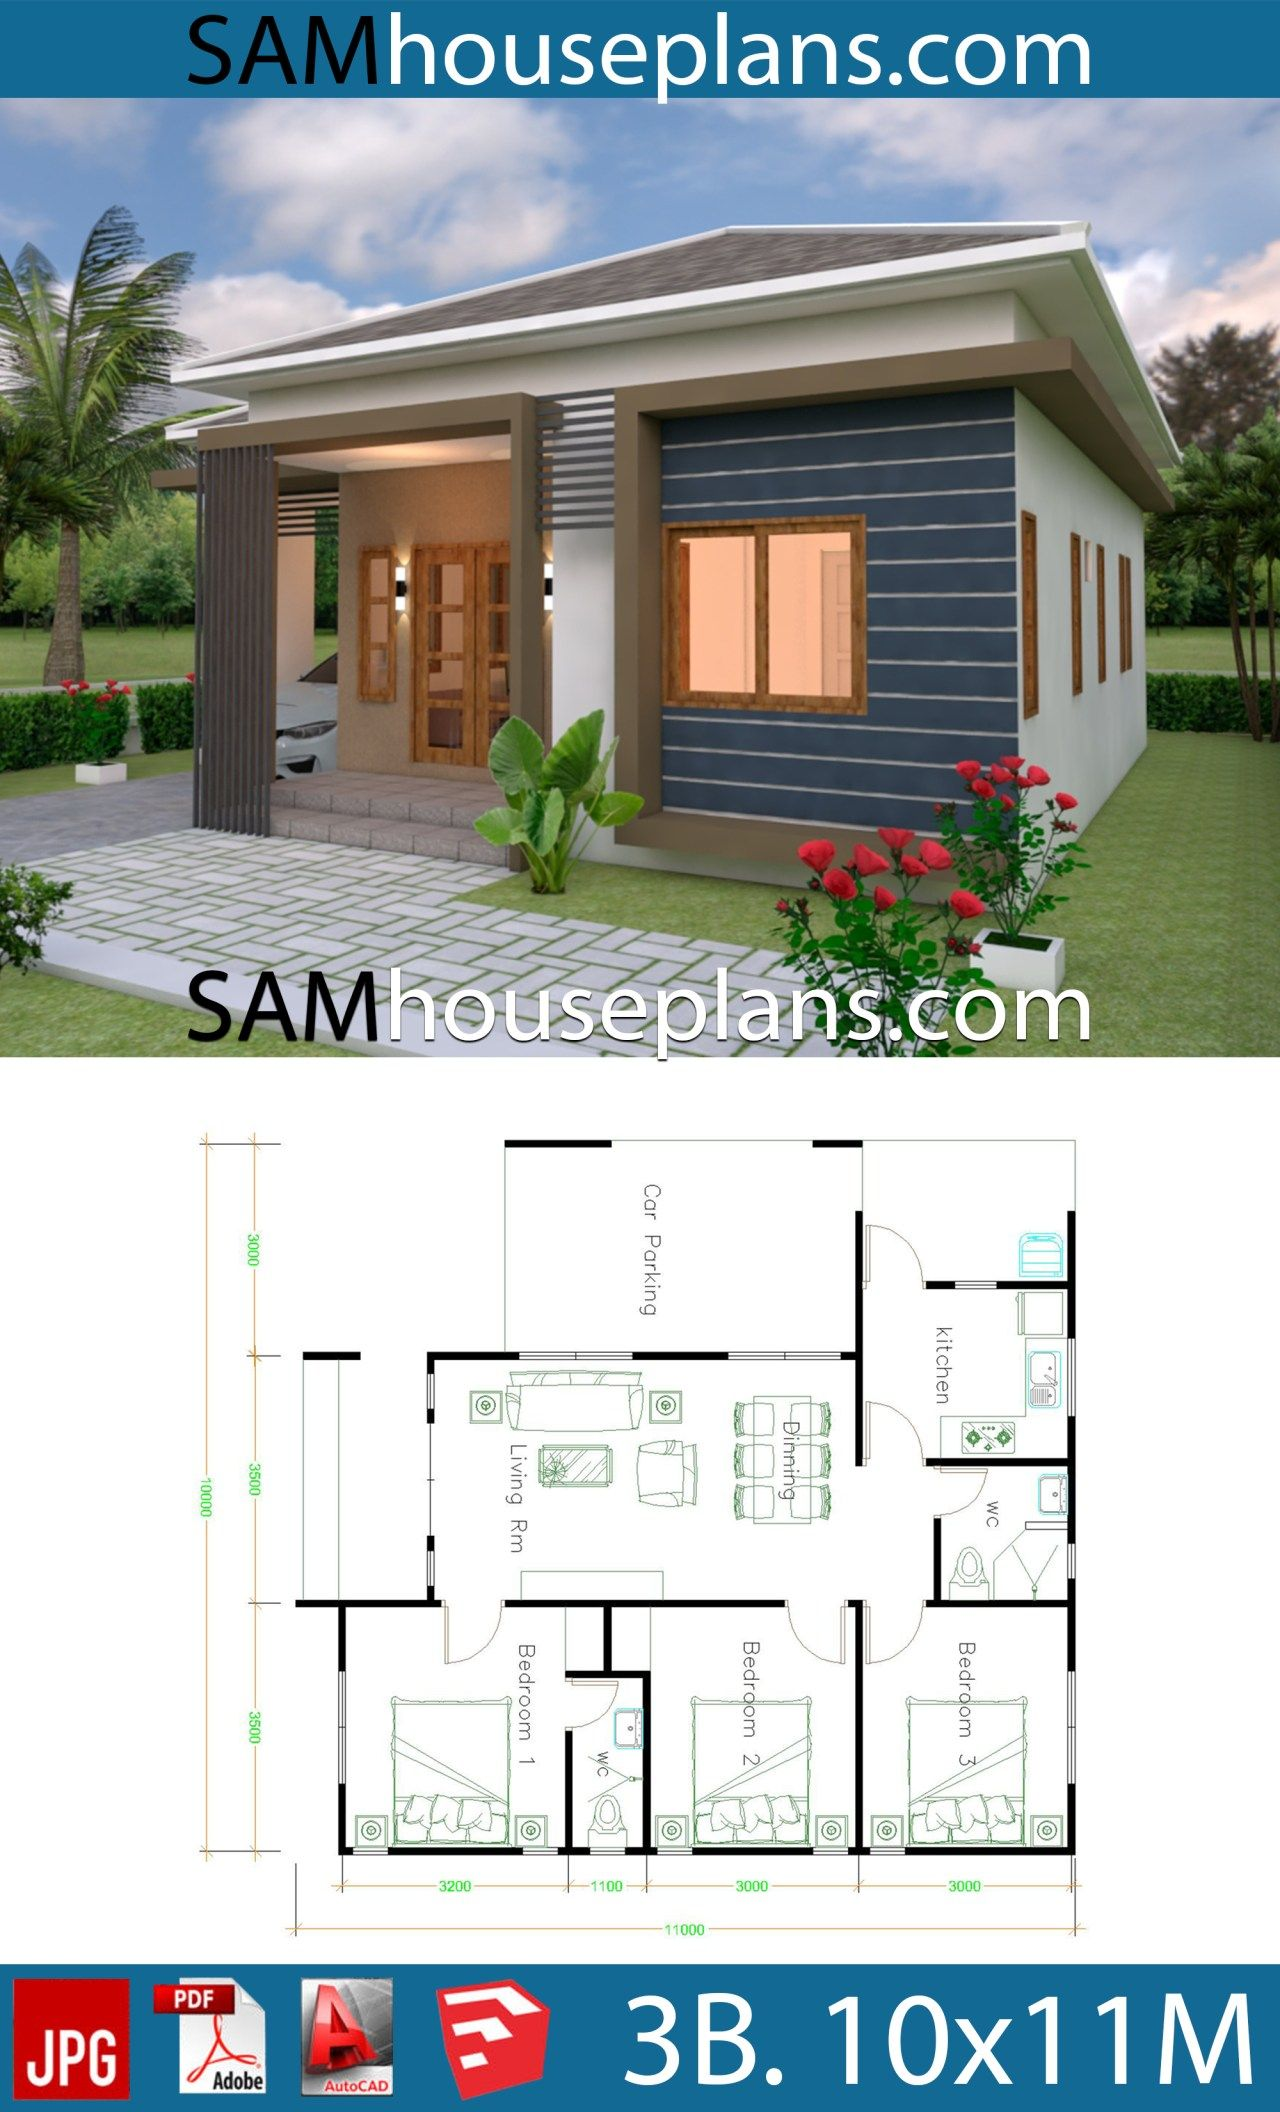 House Plans 10x11 With 3 Bedrooms Roof Tiles Sam House Plans Wooden House Plans Small House Design Plans House Plans